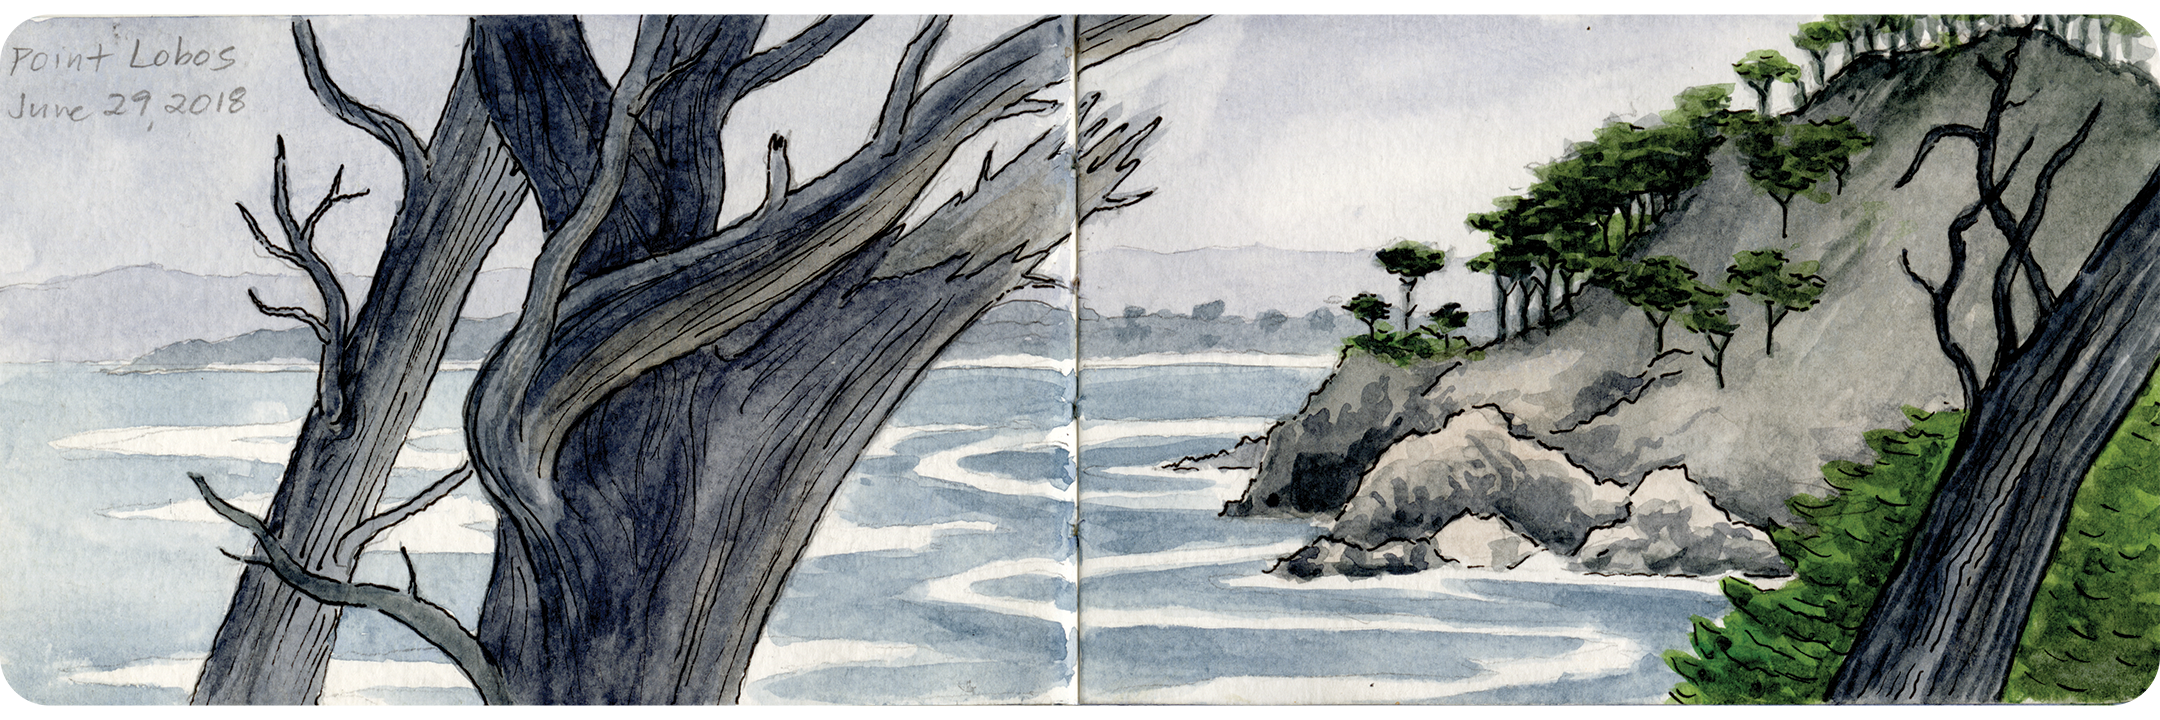 Point_Lobos_Summer.png